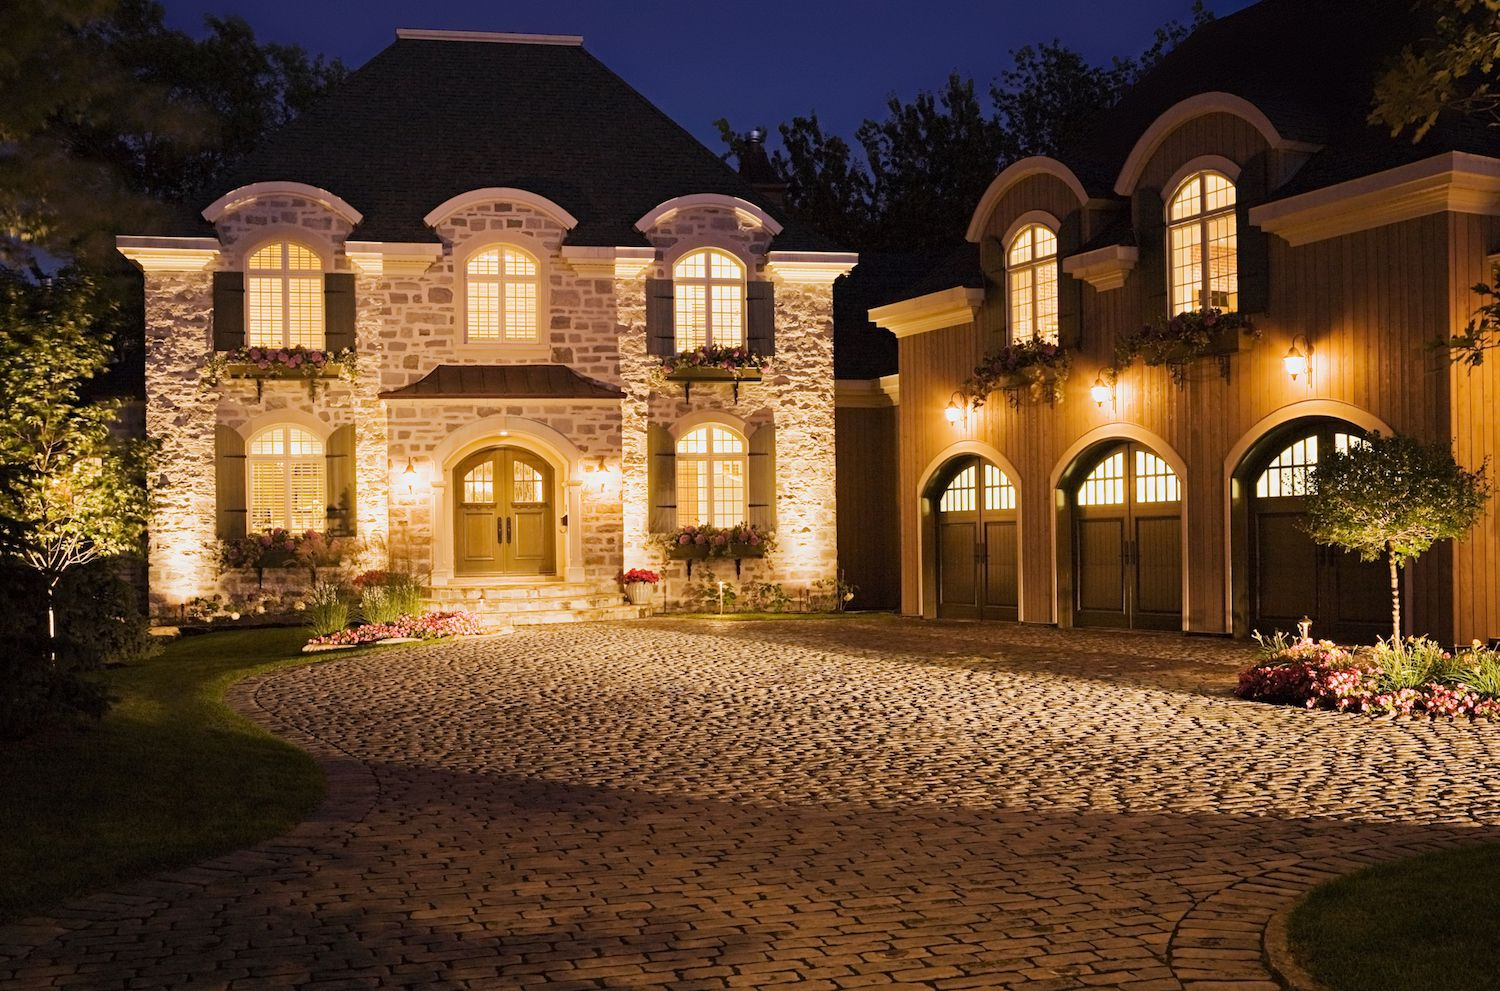 Landscape Lighting Show Off Your Nighttime Curb Appeal